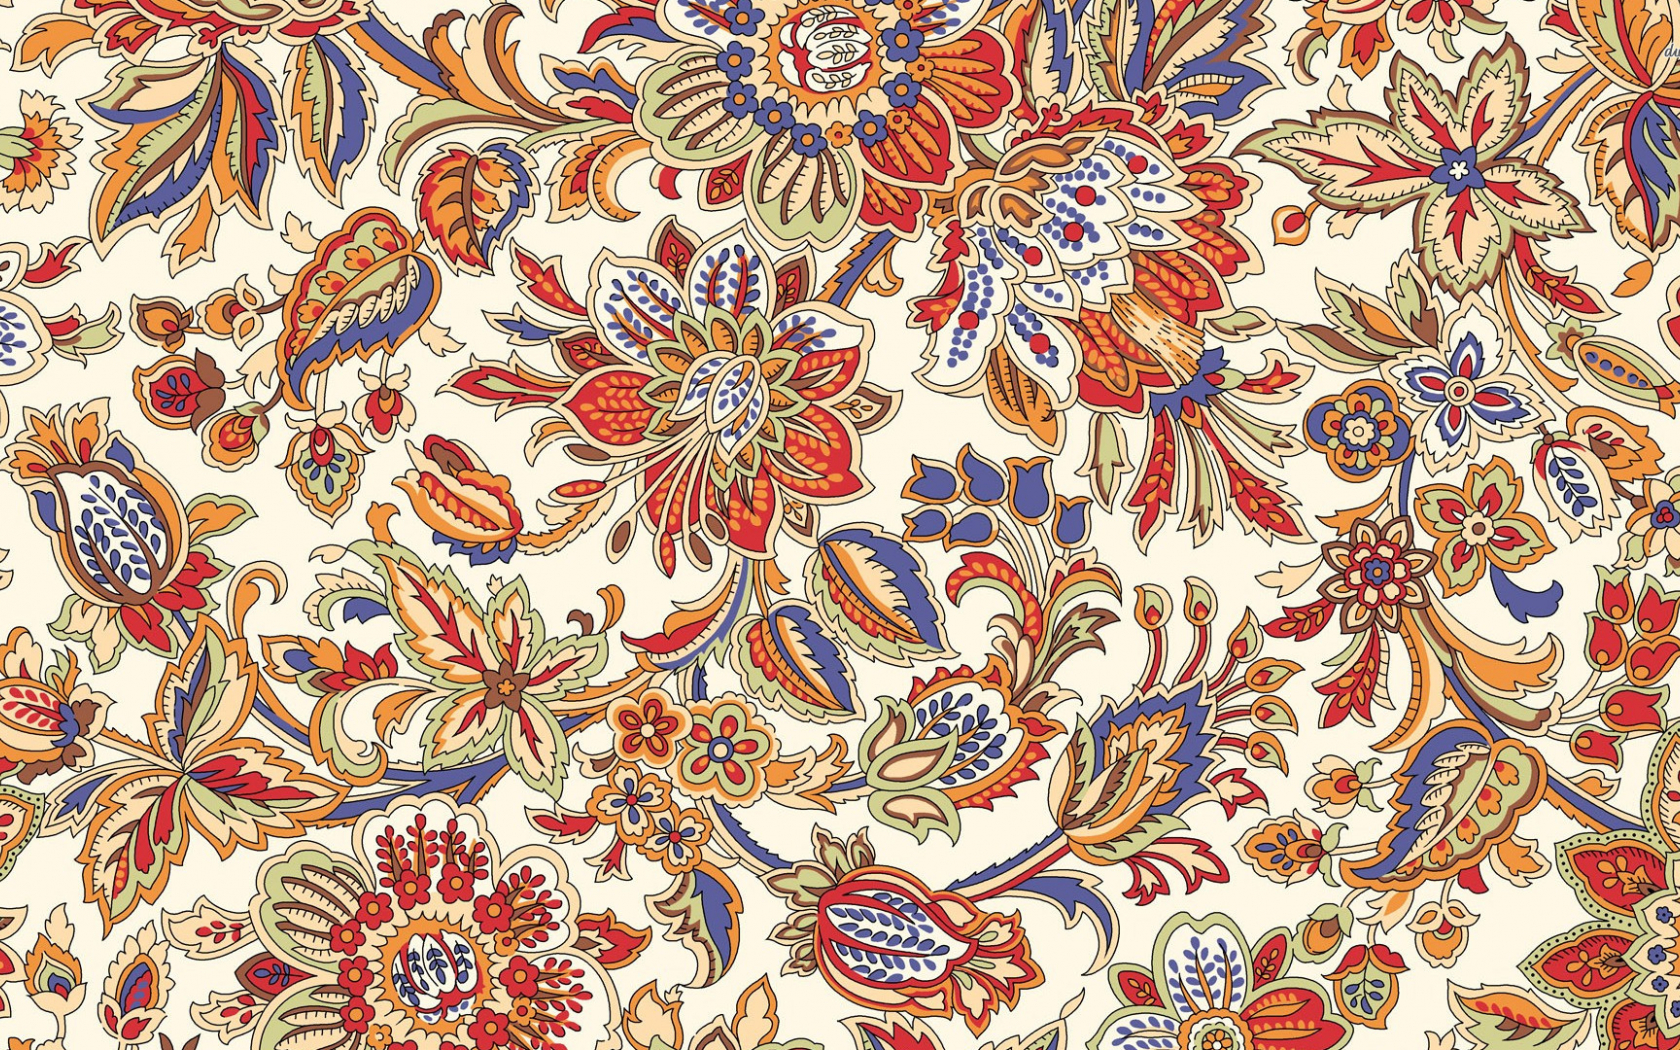 Free Download Floral Pattern Wallpaper Vector Wallpapers 10299